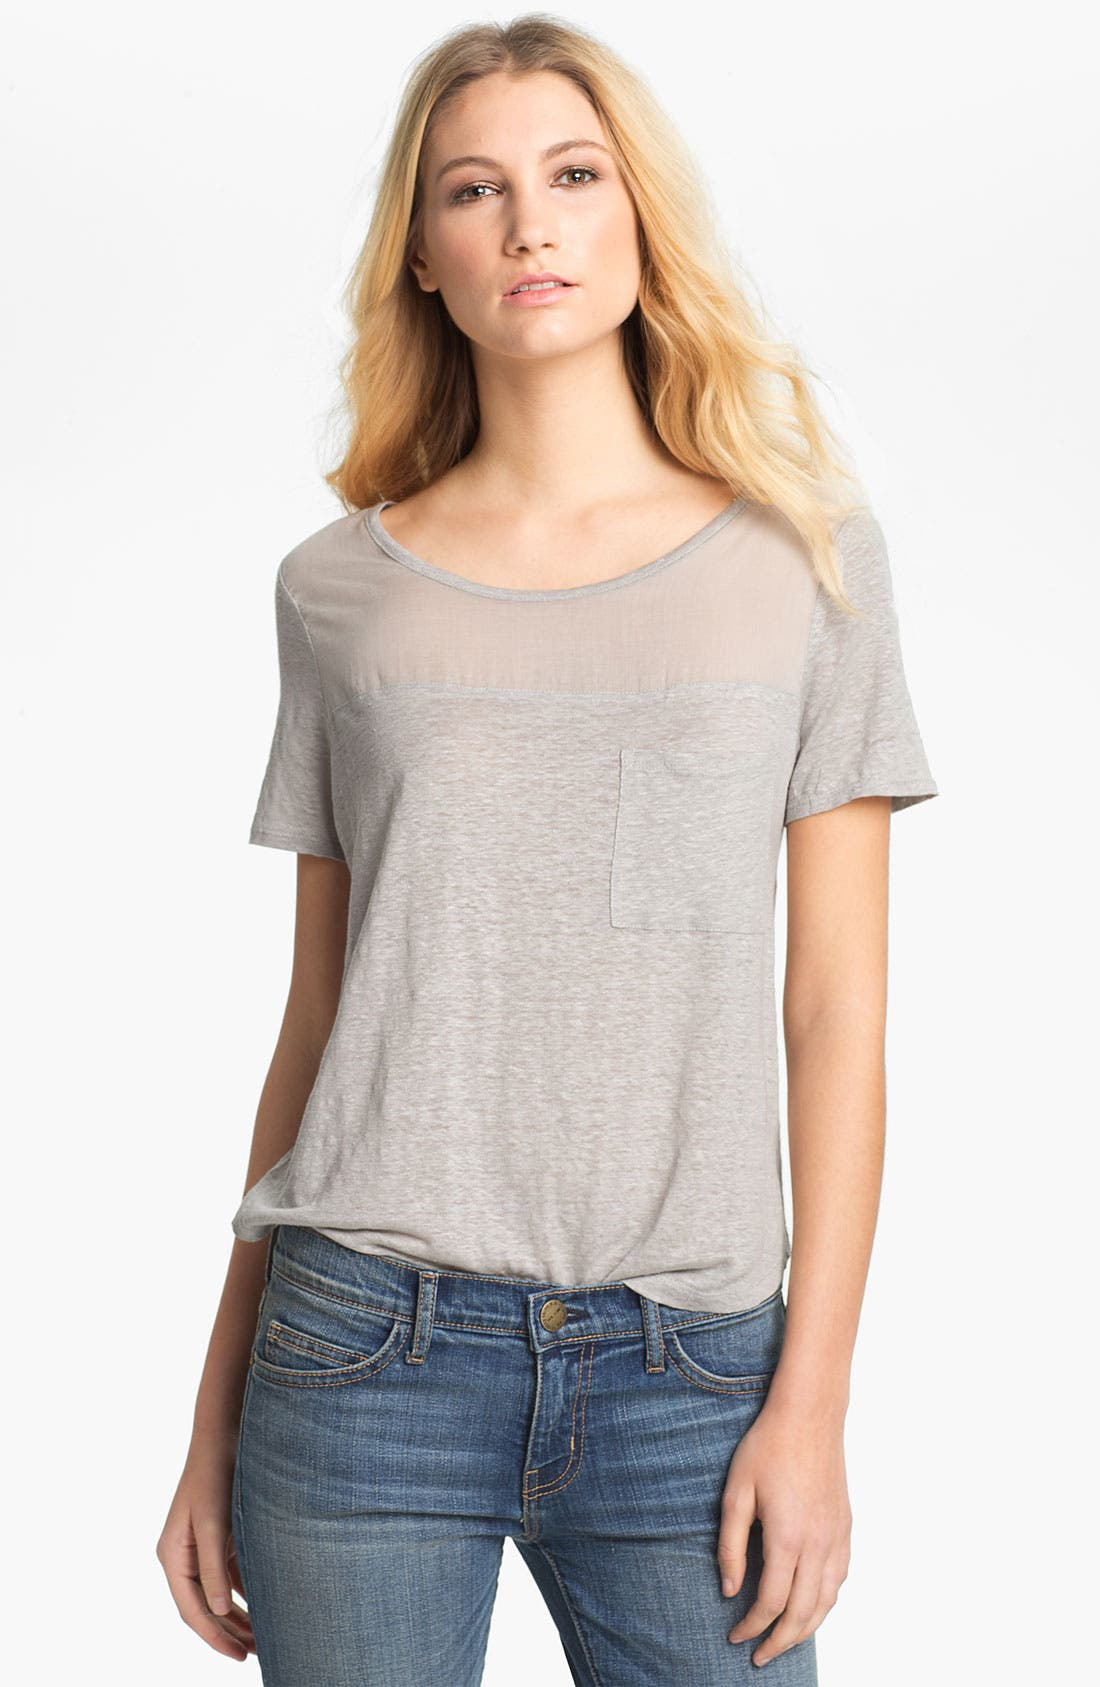 Main Image - Soft Joie 'Rhett' Sheer Yoke Pocket Tee